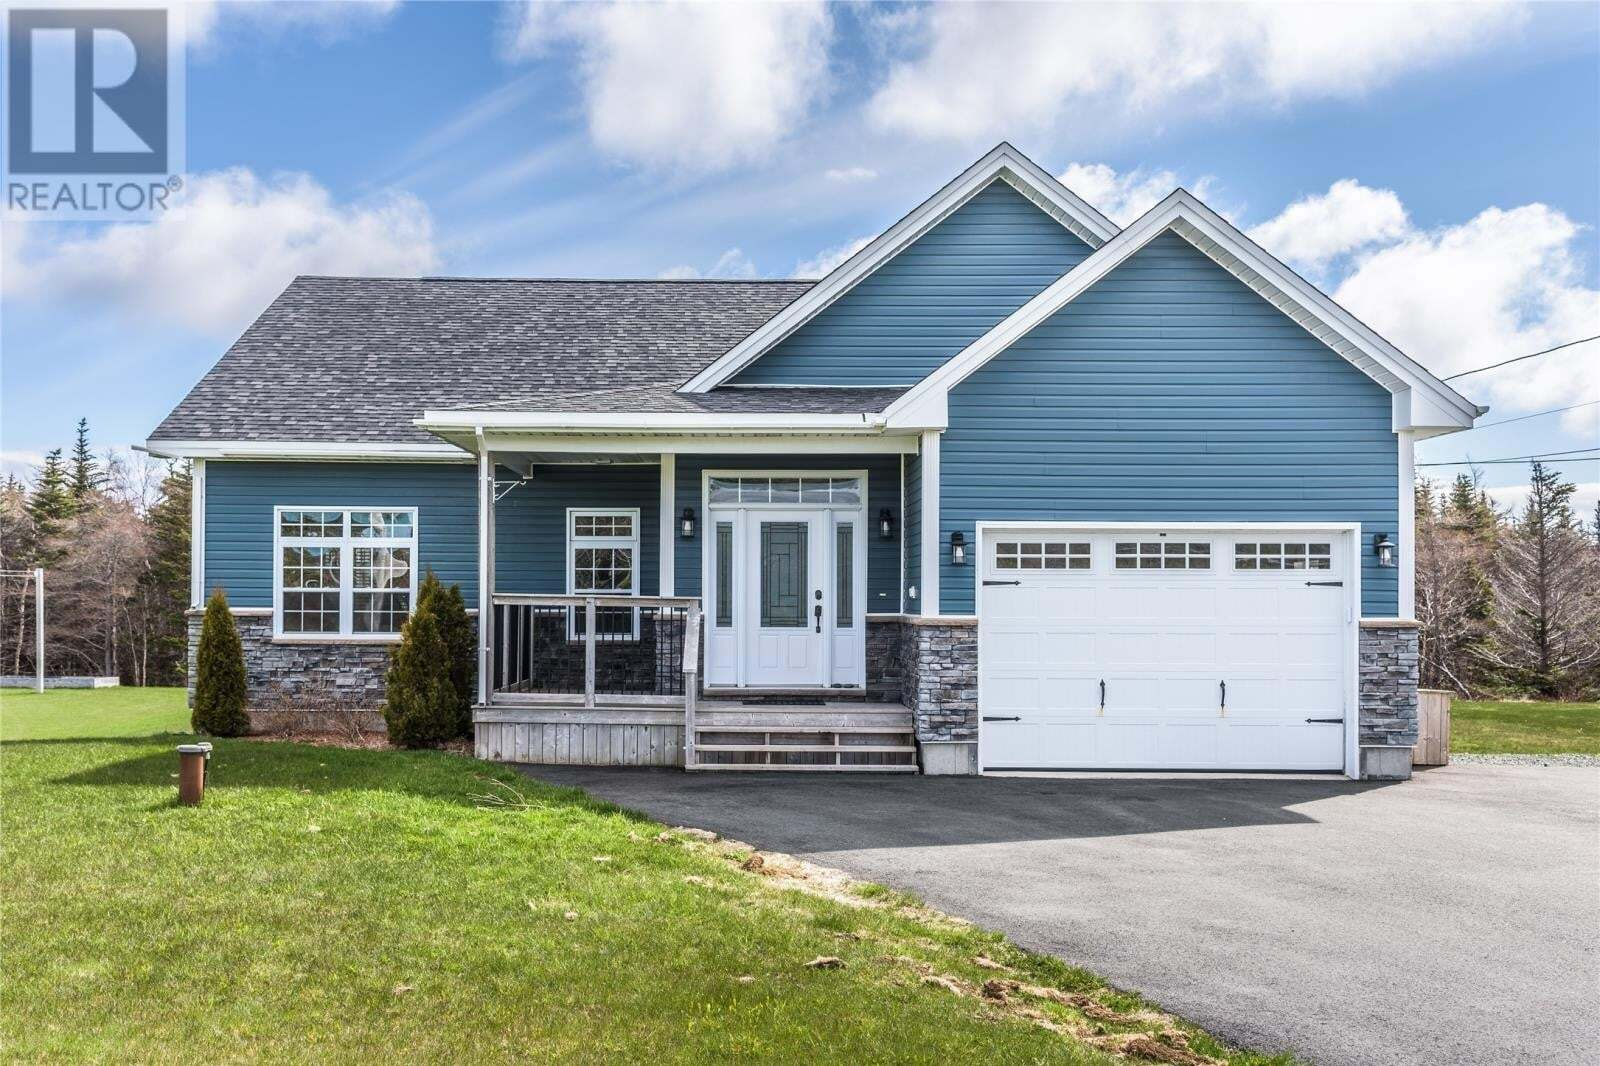 House for sale at 486 Pouch Cove Highway Hy Flatrock Newfoundland - MLS: 1214334